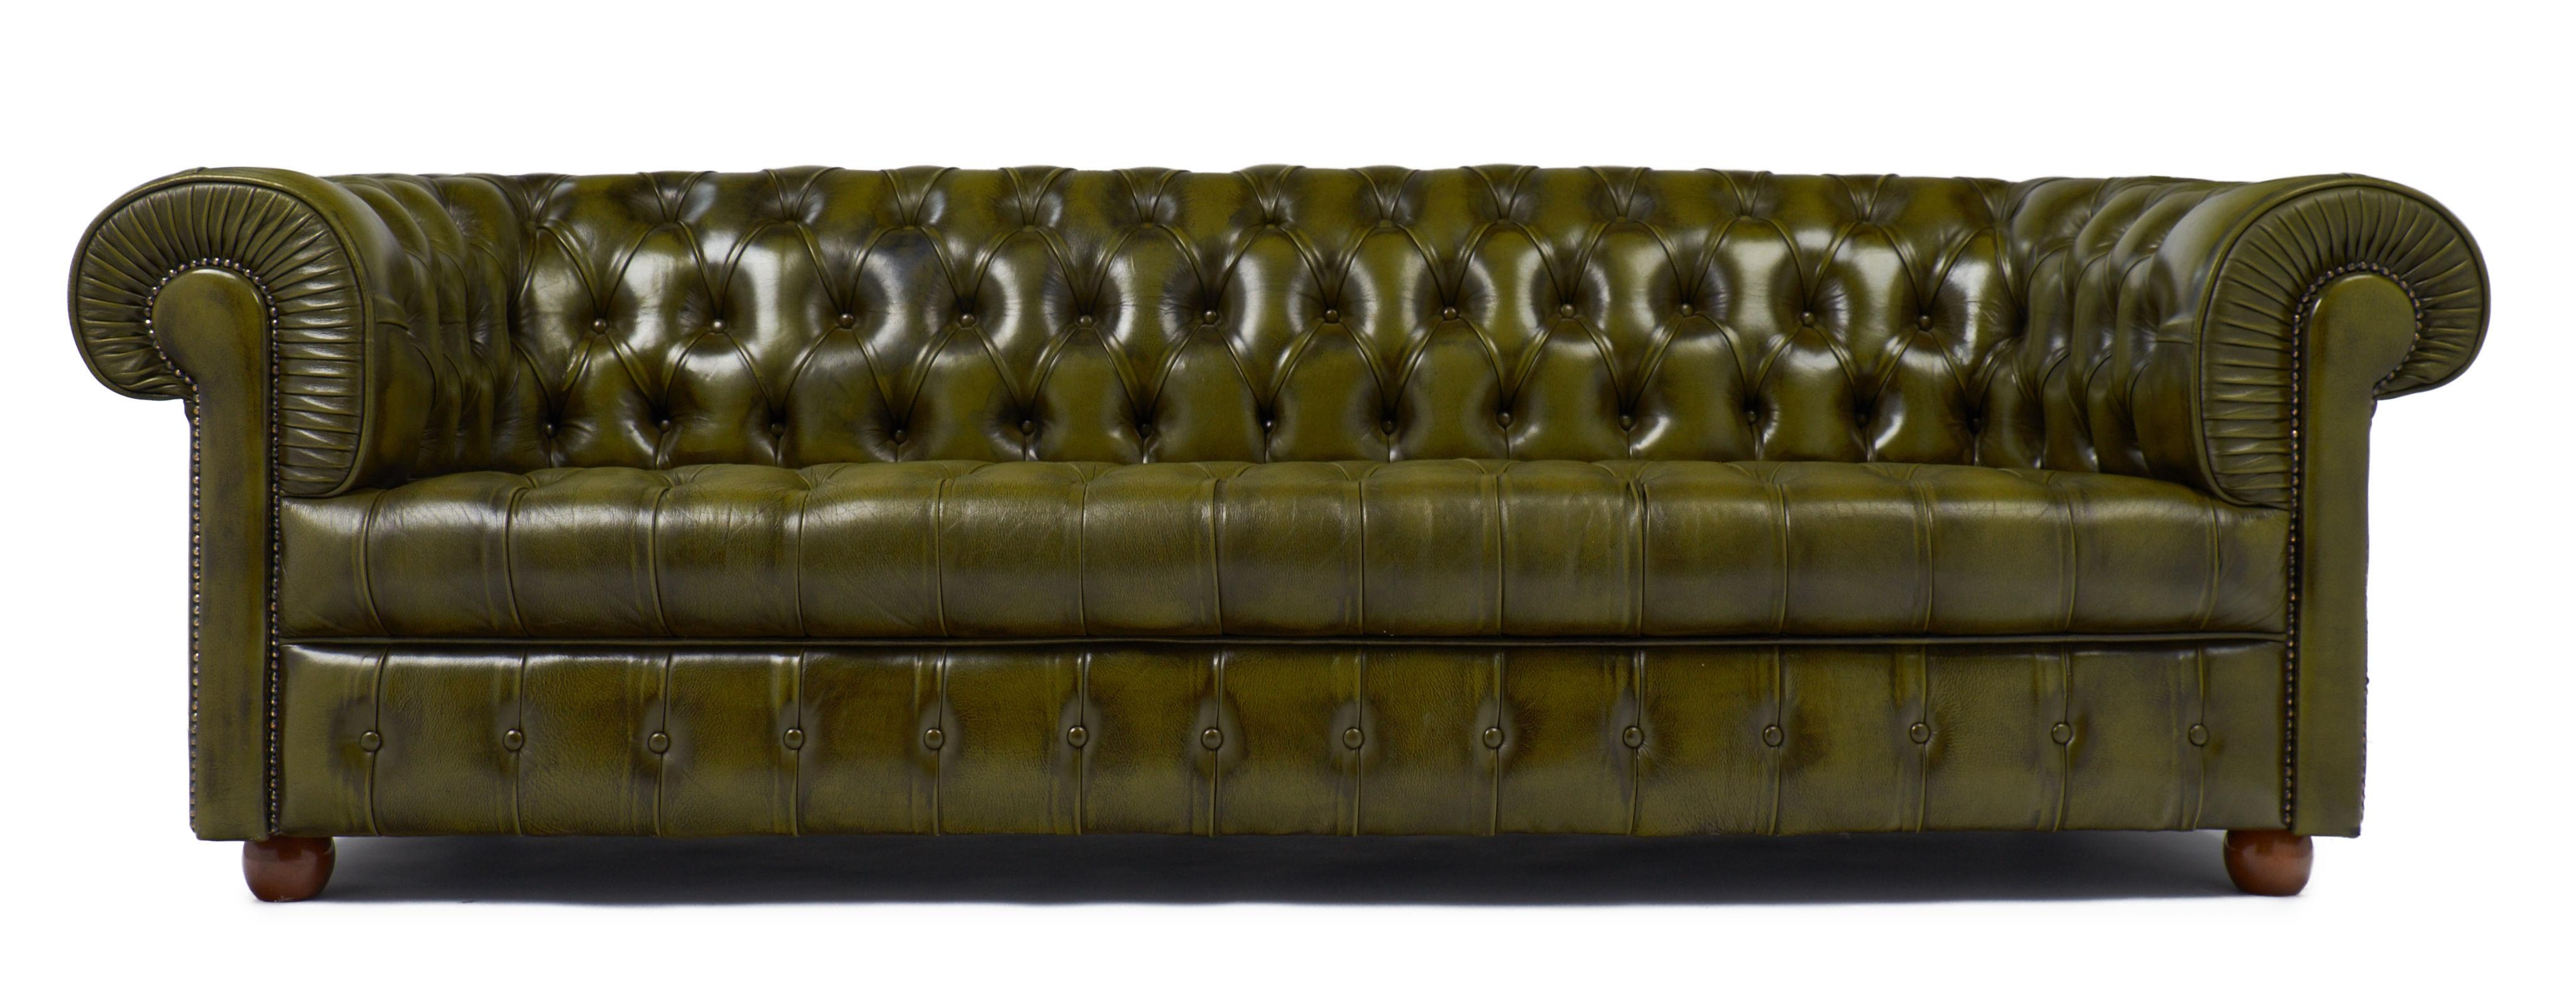 Vintage Green Leather English Chesterfield Sofa – Jean Marc Fray Intended For Vintage Chesterfield Sofas (View 18 of 20)